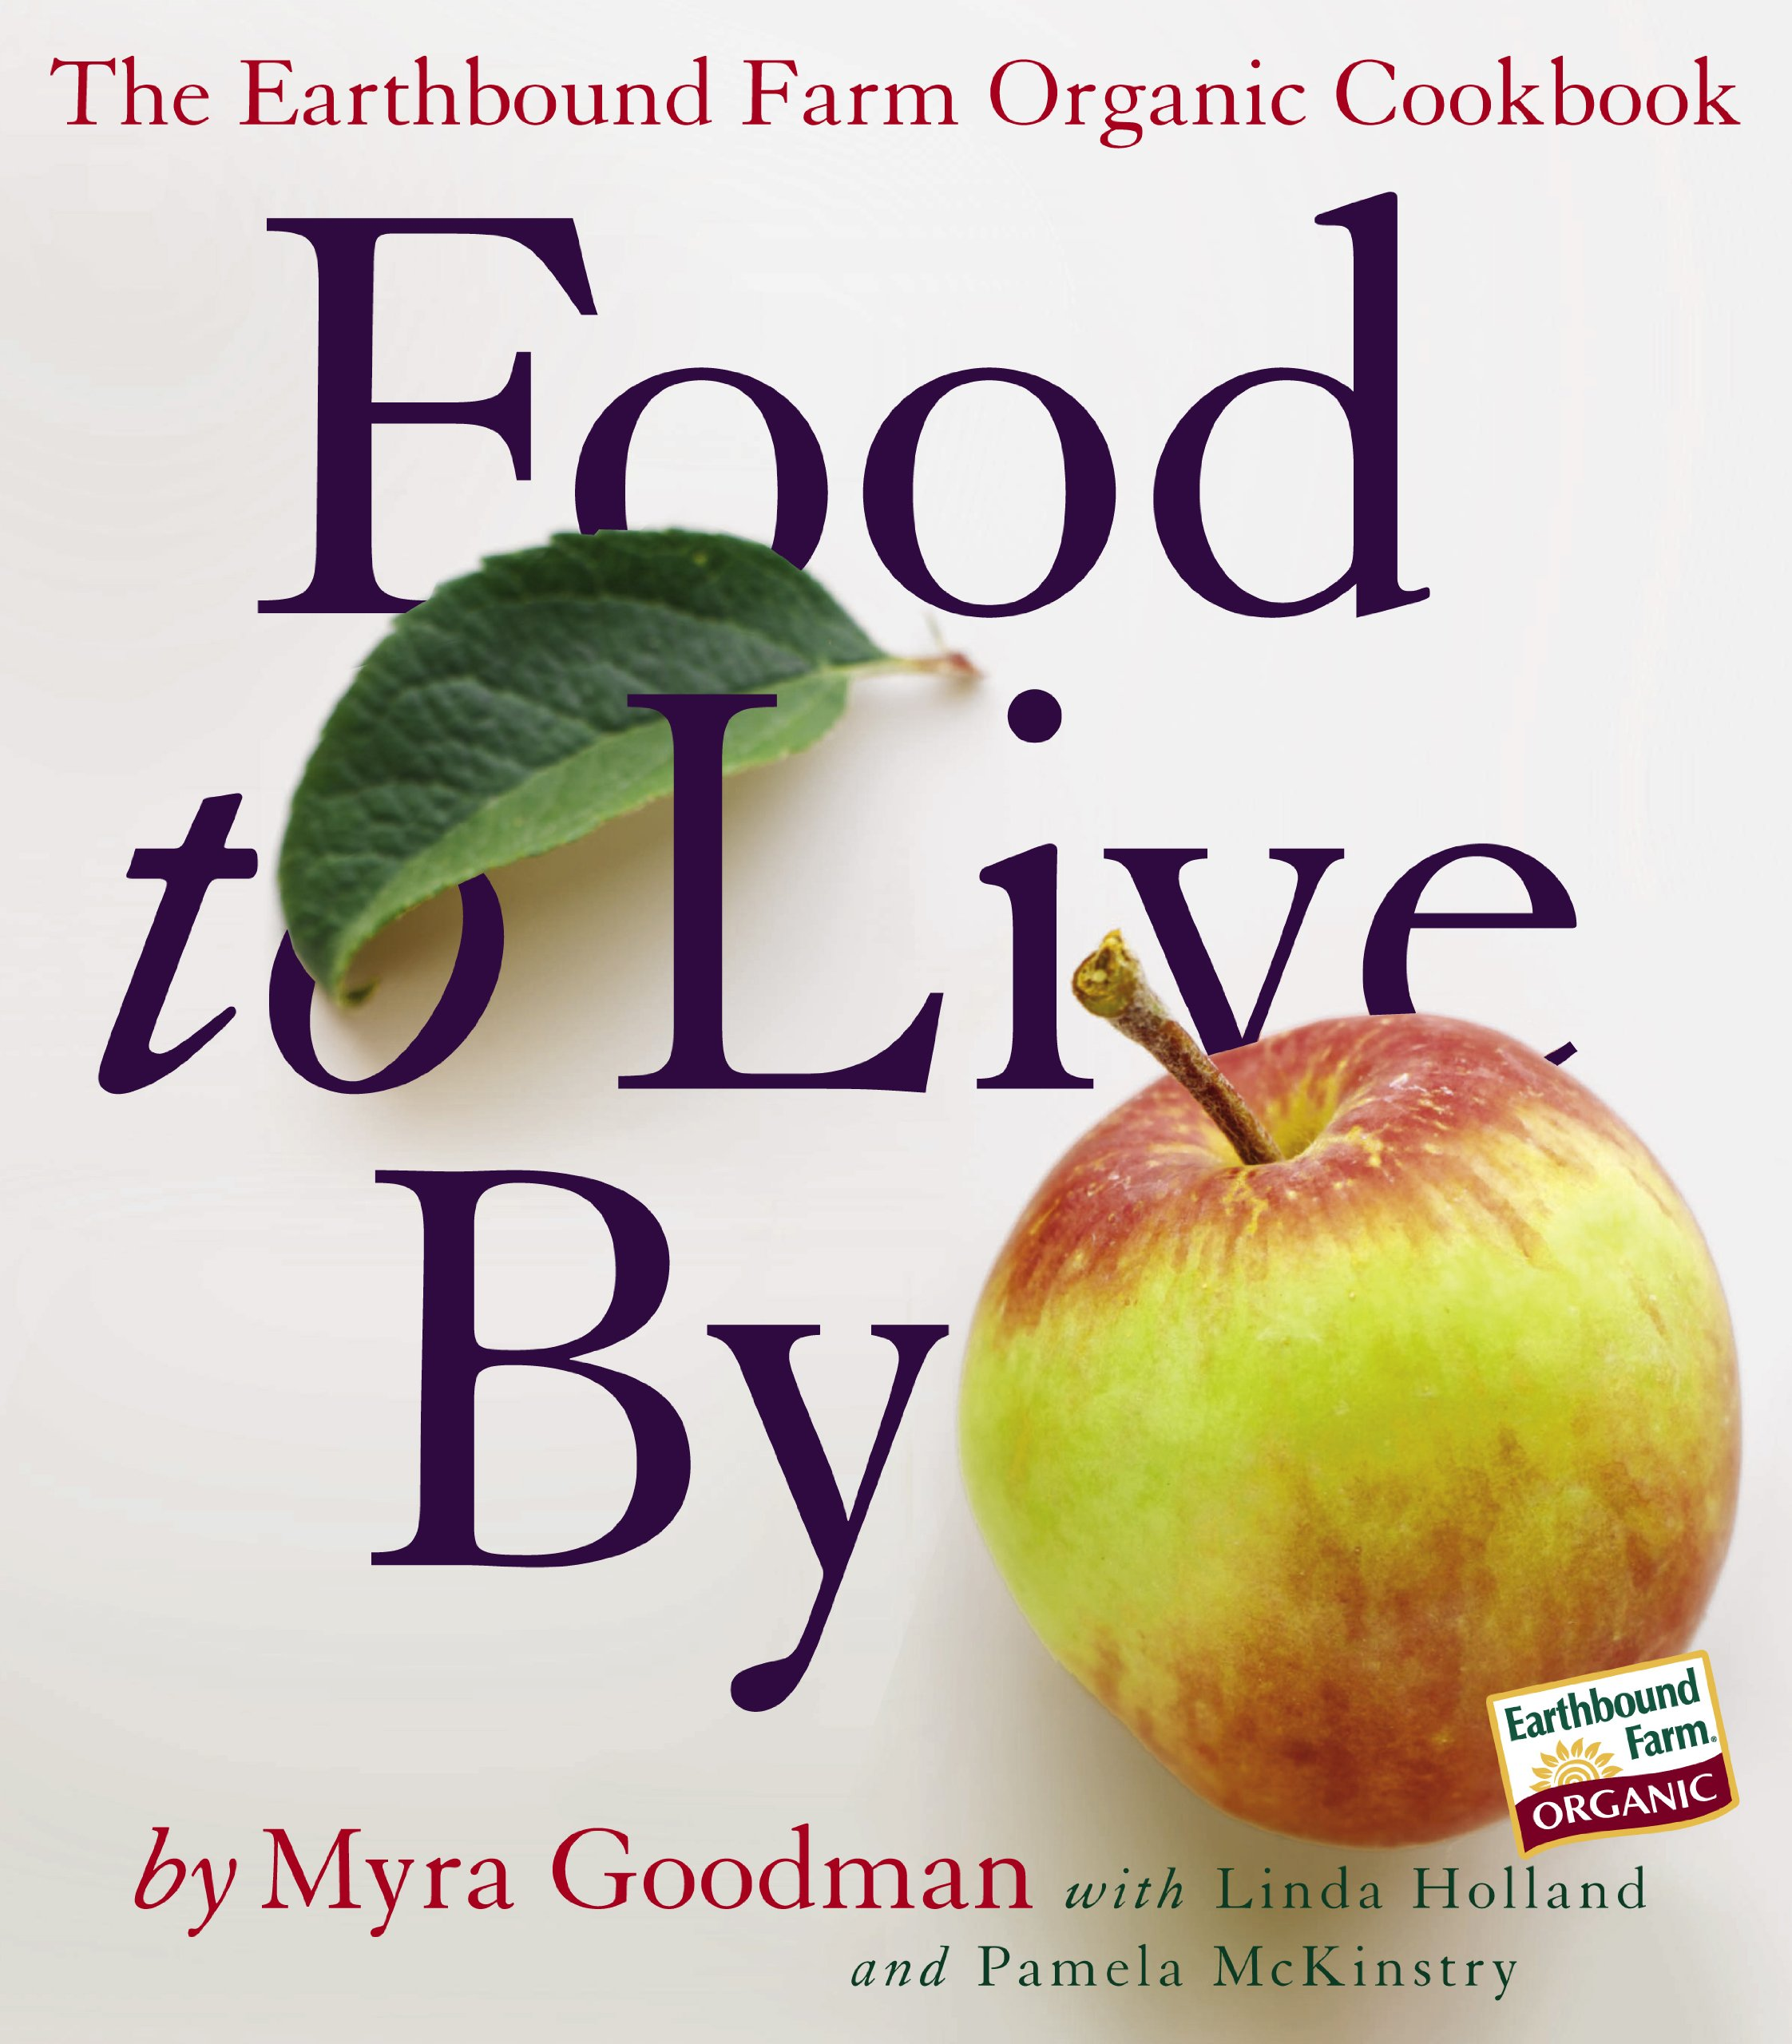 Food to live by the earthbound farm organic cookbook myra food to live by the earthbound farm organic cookbook myra goodman linda holland pamela mckinstry 0019628138996 amazon books forumfinder Images